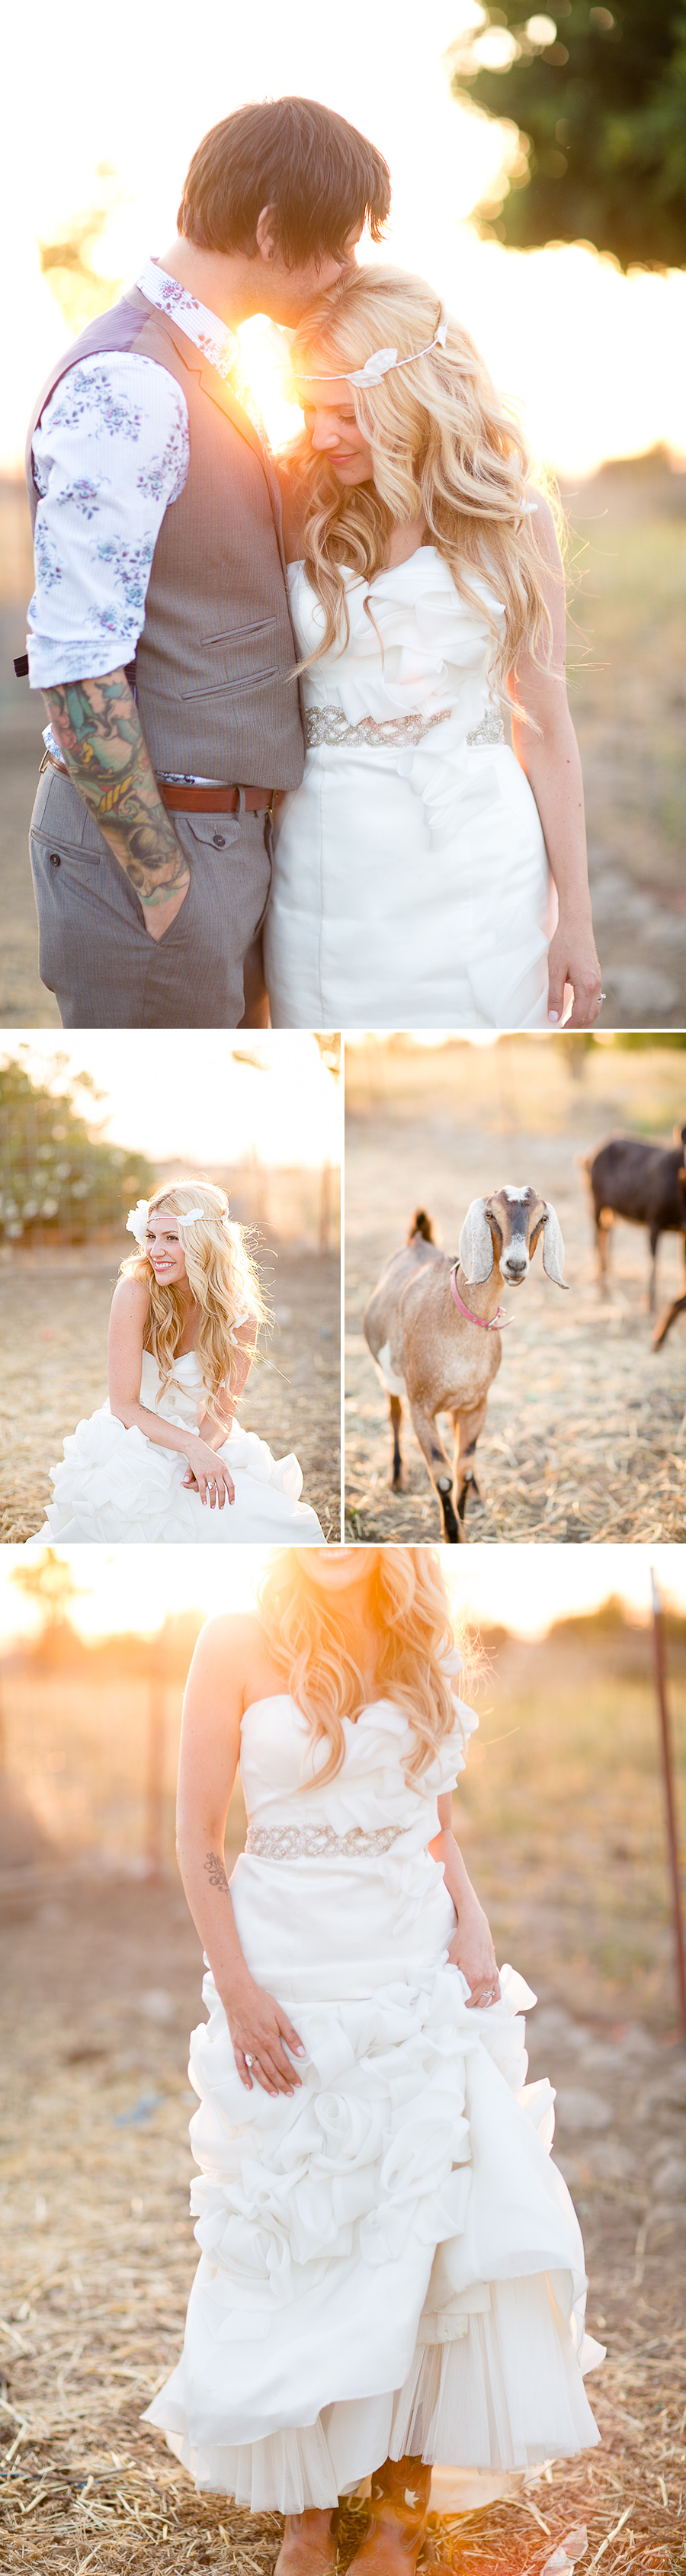 amazing light wedding portraits, fine art wedding portraits, gorgeous bride and groom, paso robles wedding, central coast wedding photographer, southern california fine art wedding photographer, vintage wedding, western themed wedding, victorian themed wedding, ranch wedding, farm wedding, fine art wedding photography, fine art wedding photographer, photography similar to jose villa